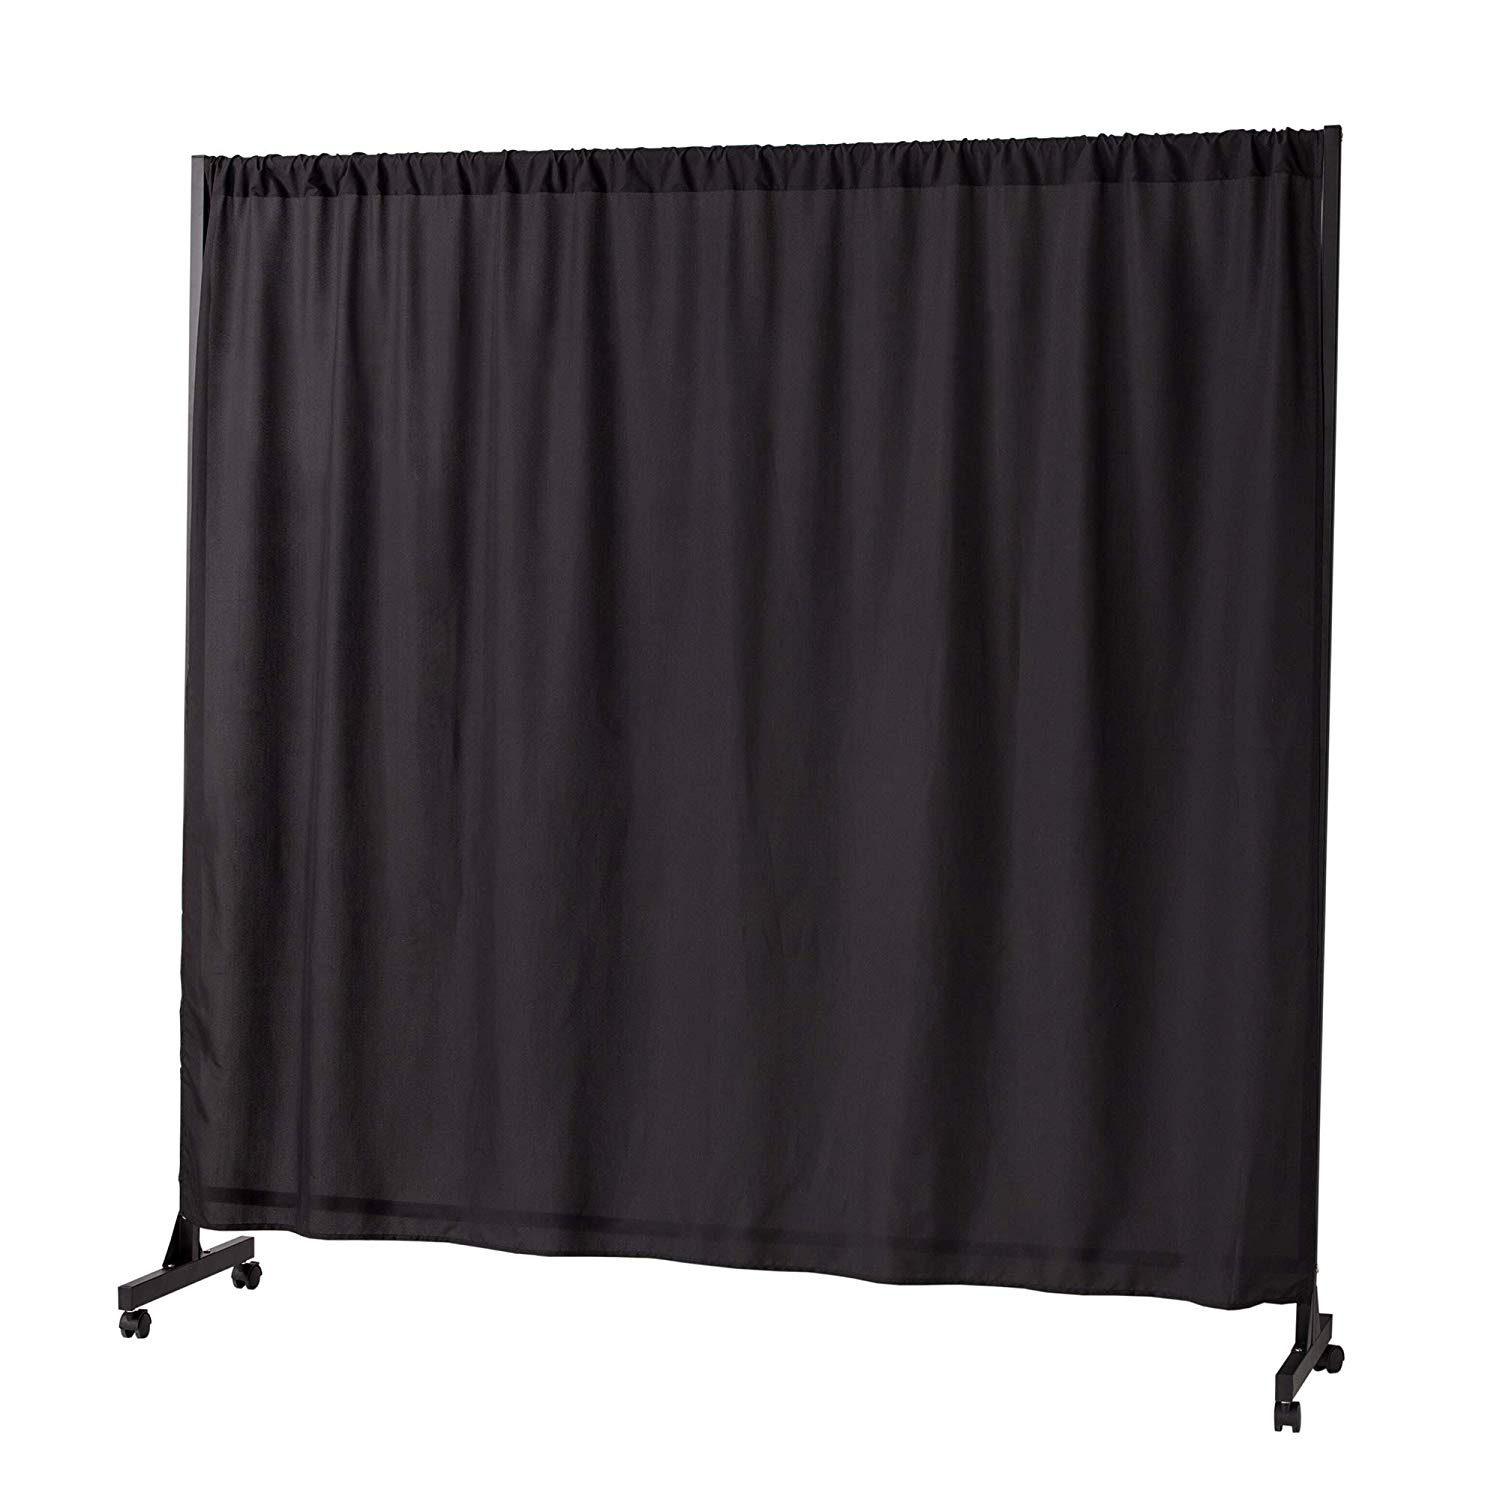 White Frame with White Blackout Fabric Privacy Room Divider Dont Look at Me